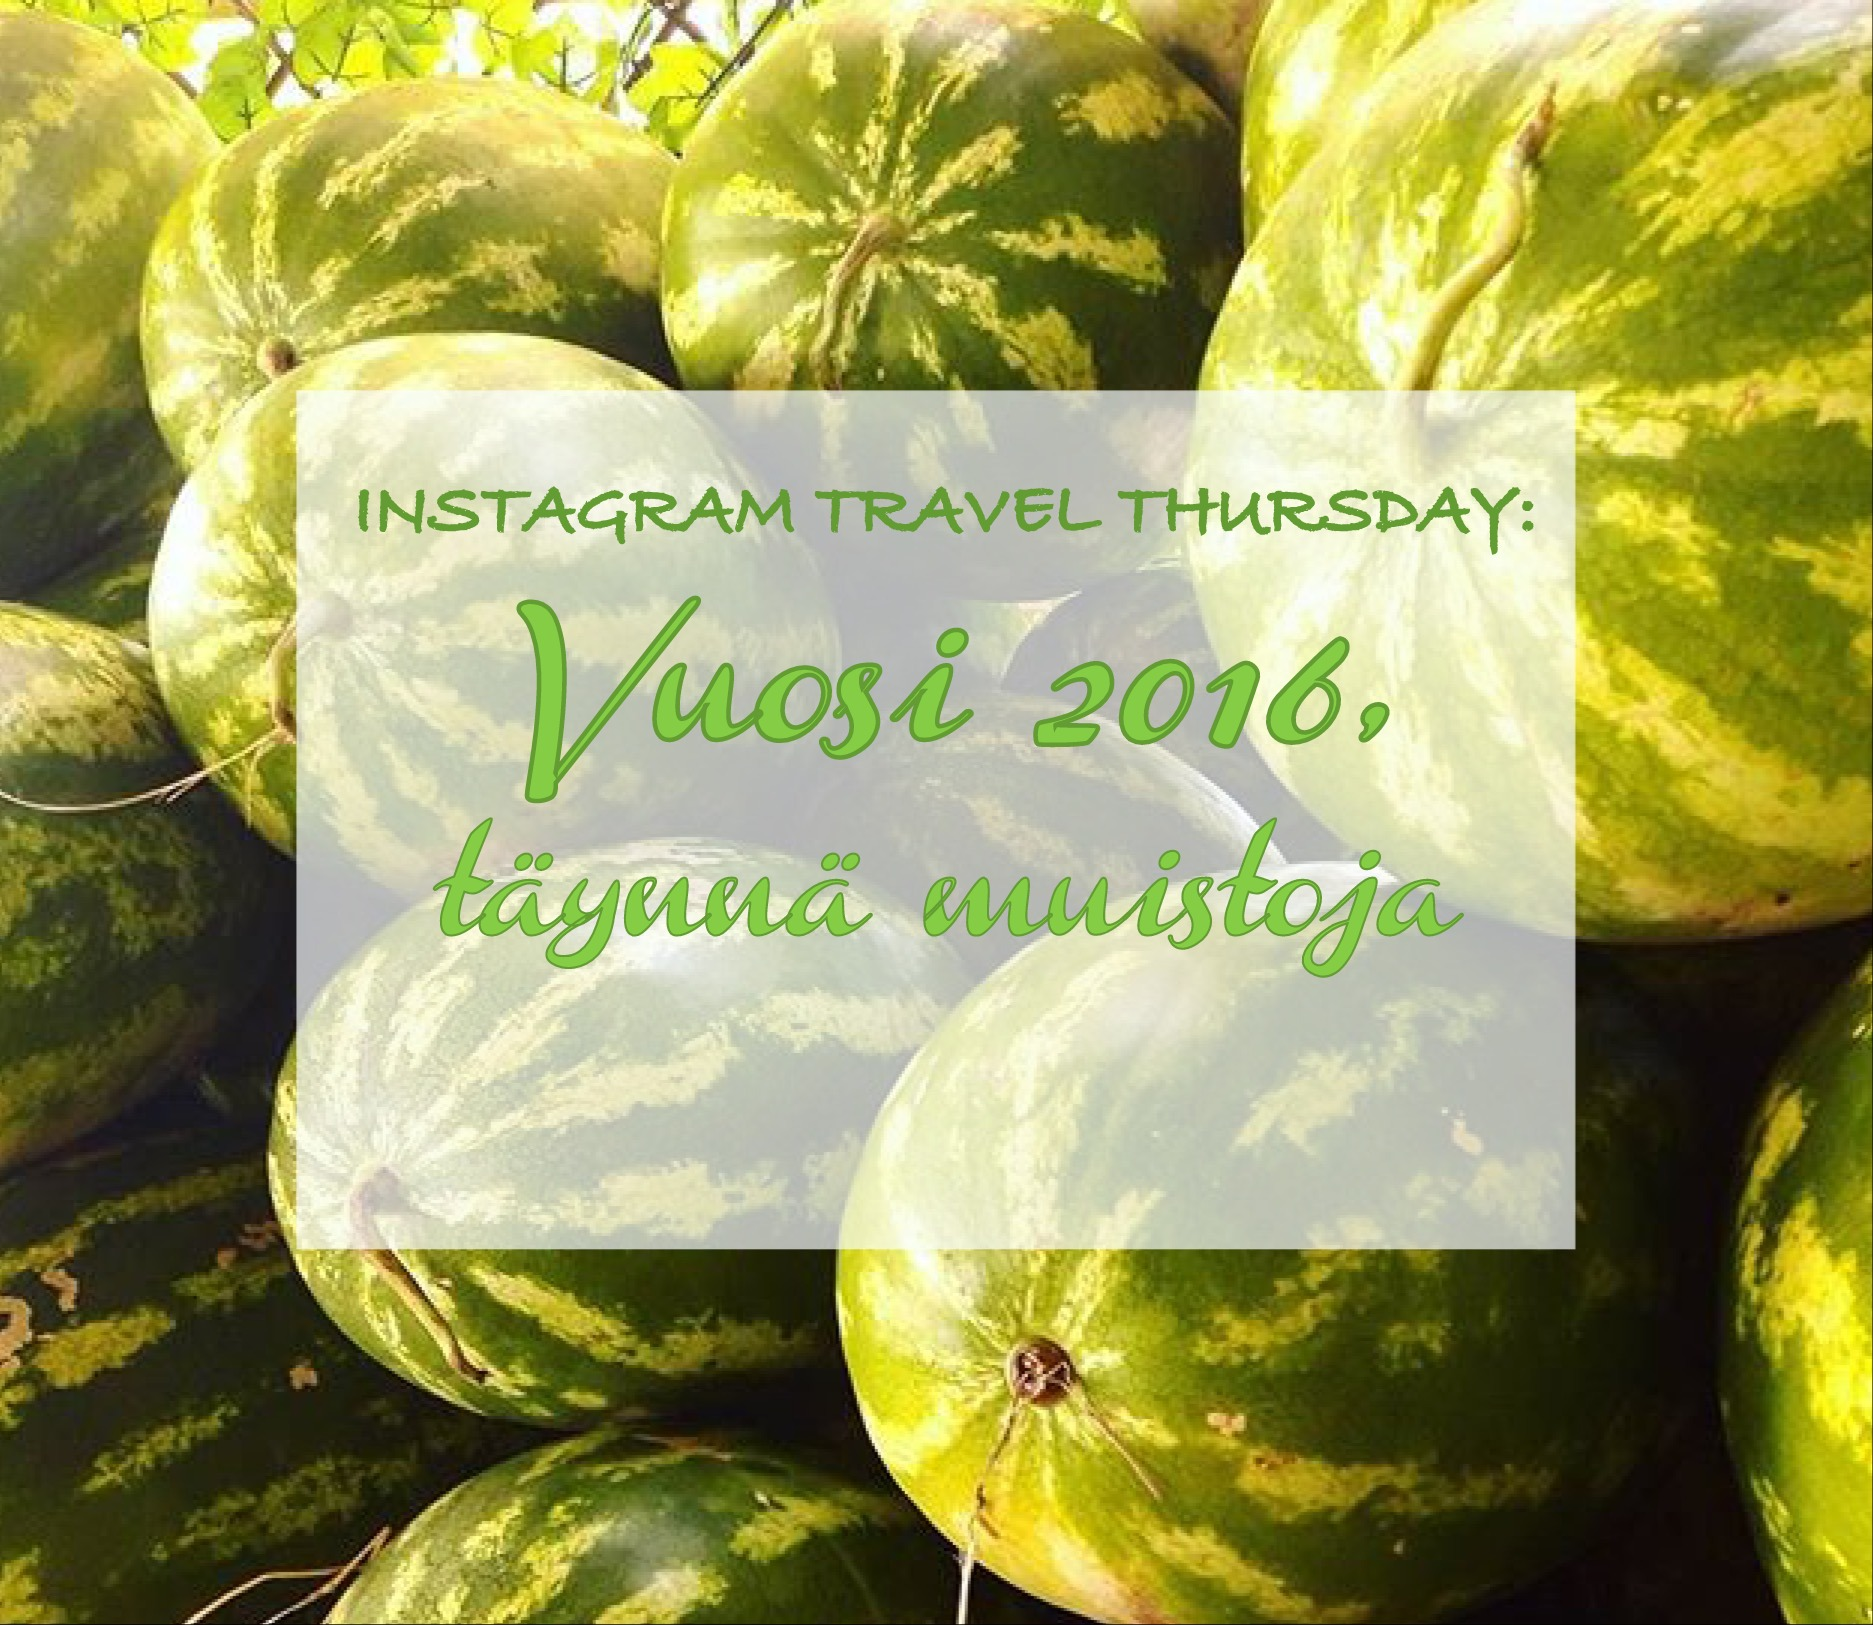 Instagram Travel Thursday: Vuosi 2016, täynnä muistoja